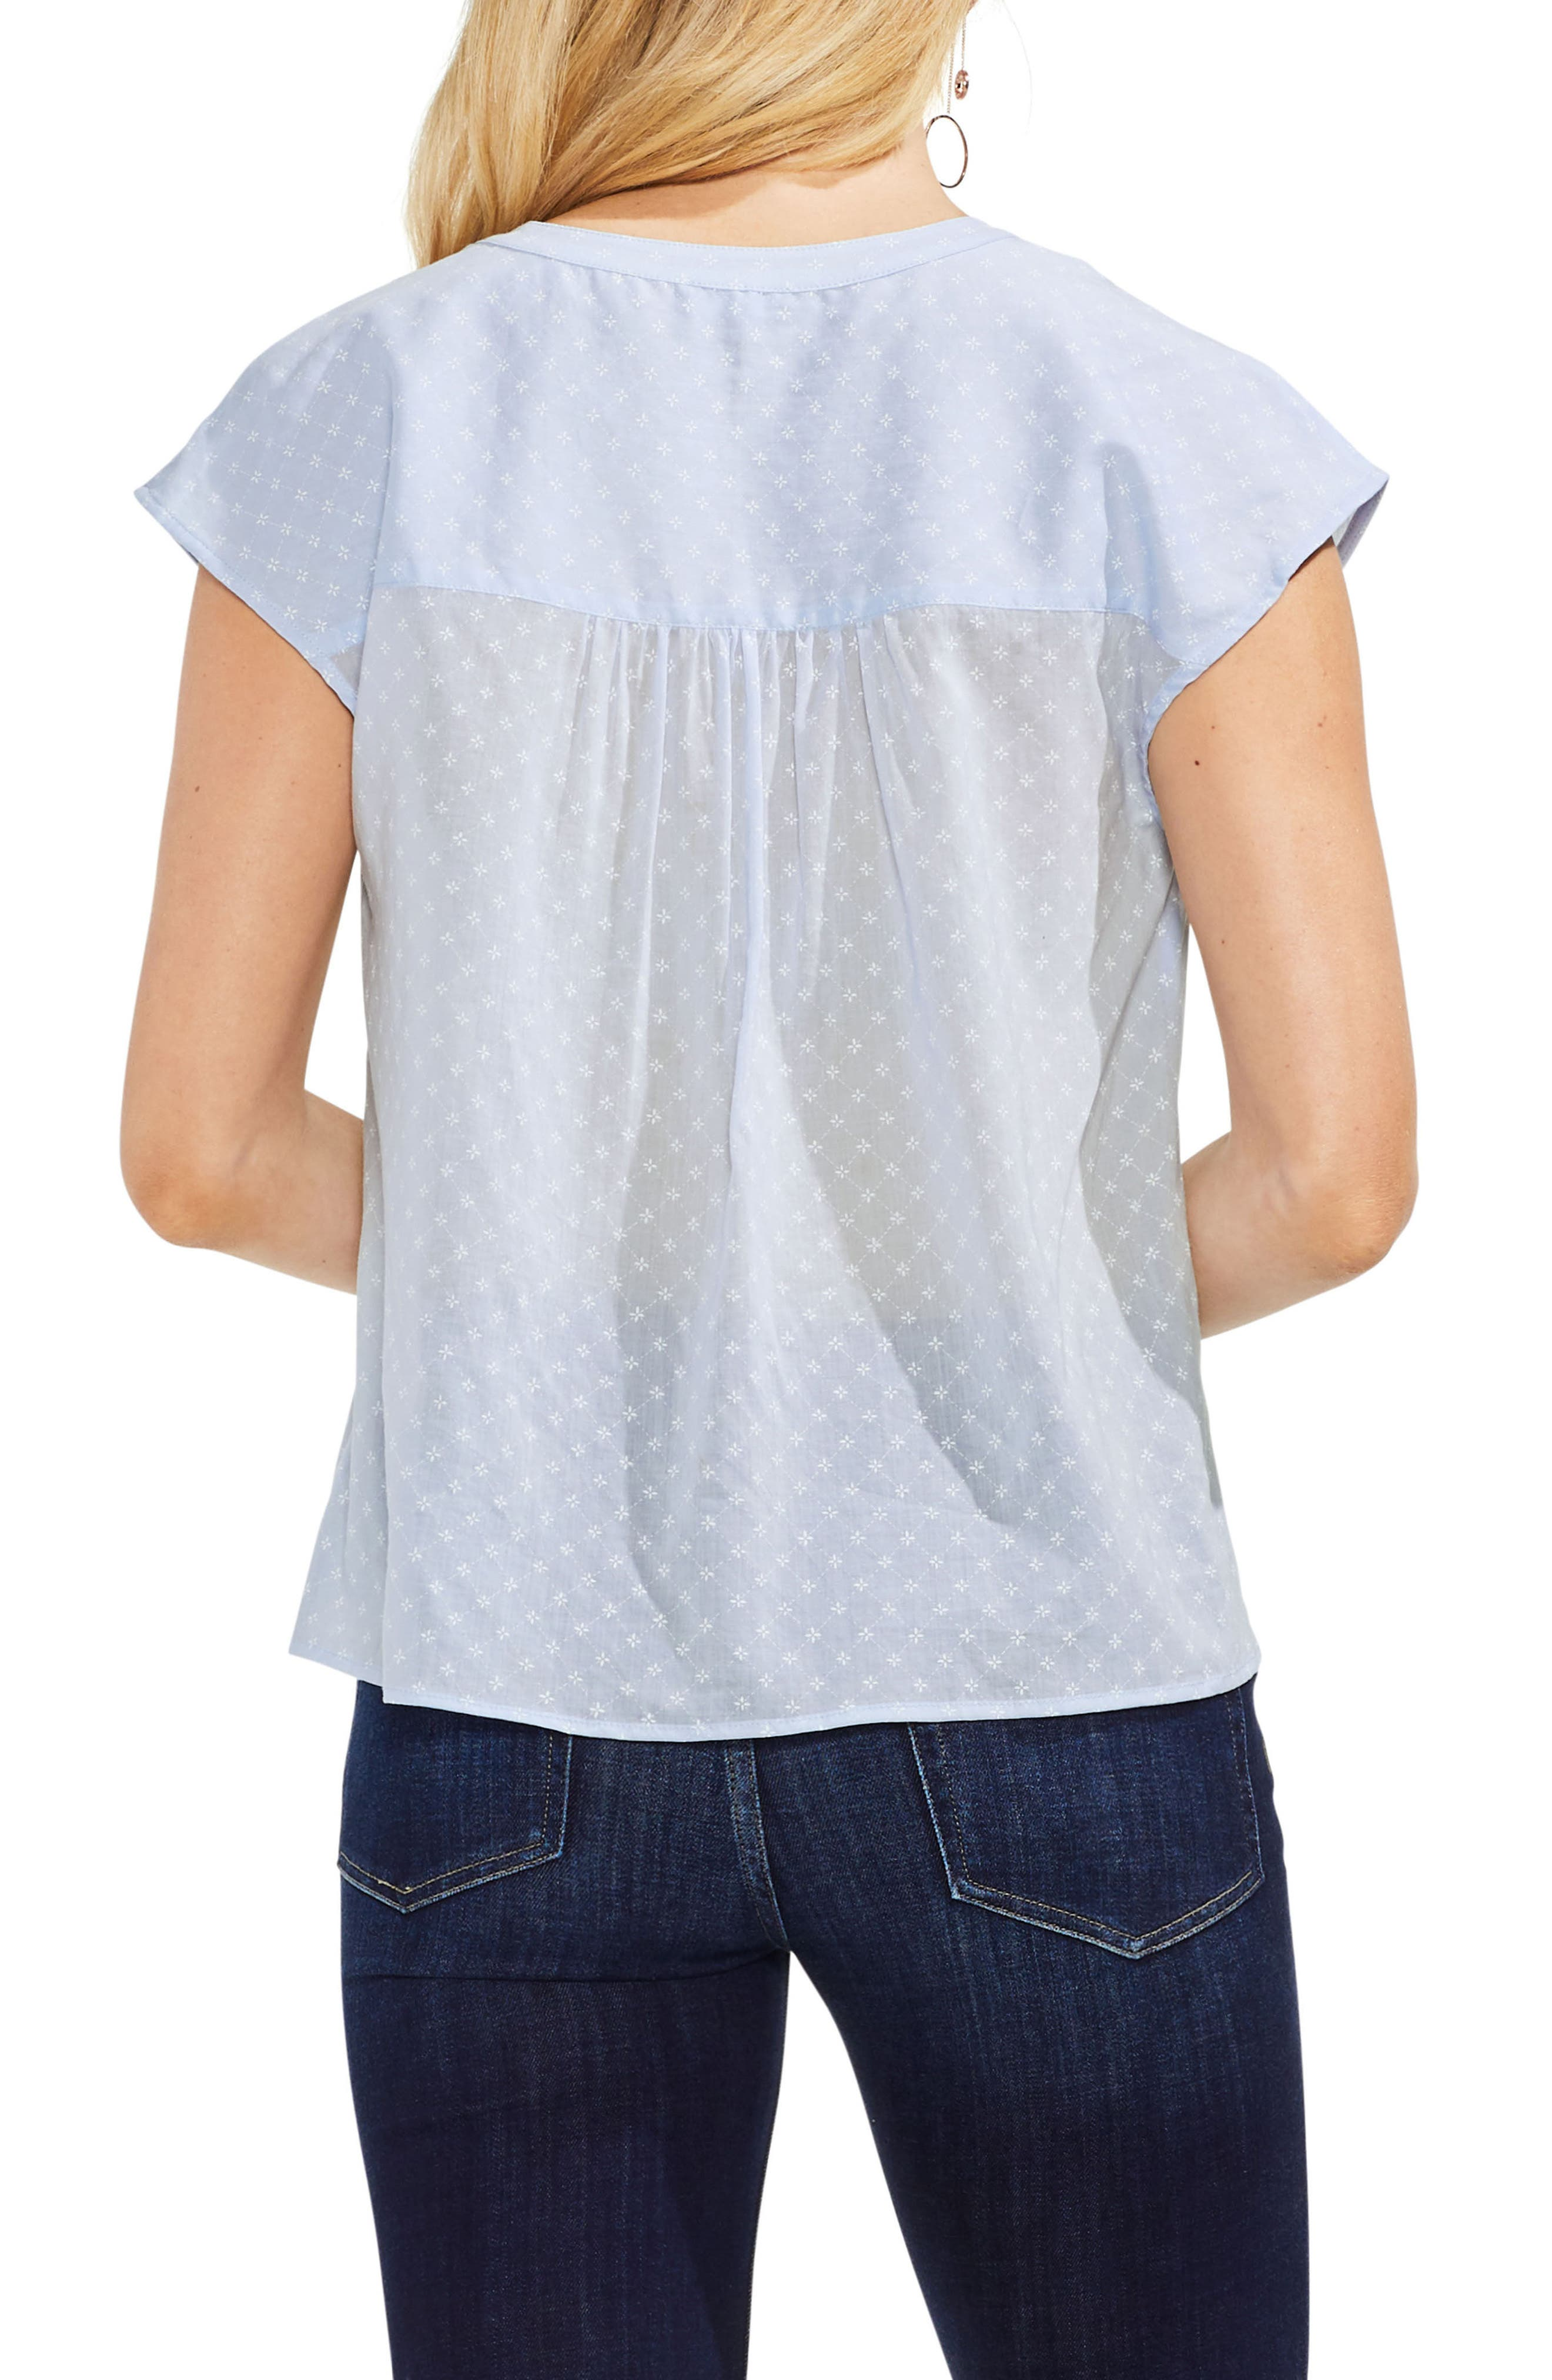 Floral Embroidered Top,                             Alternate thumbnail 2, color,                             465